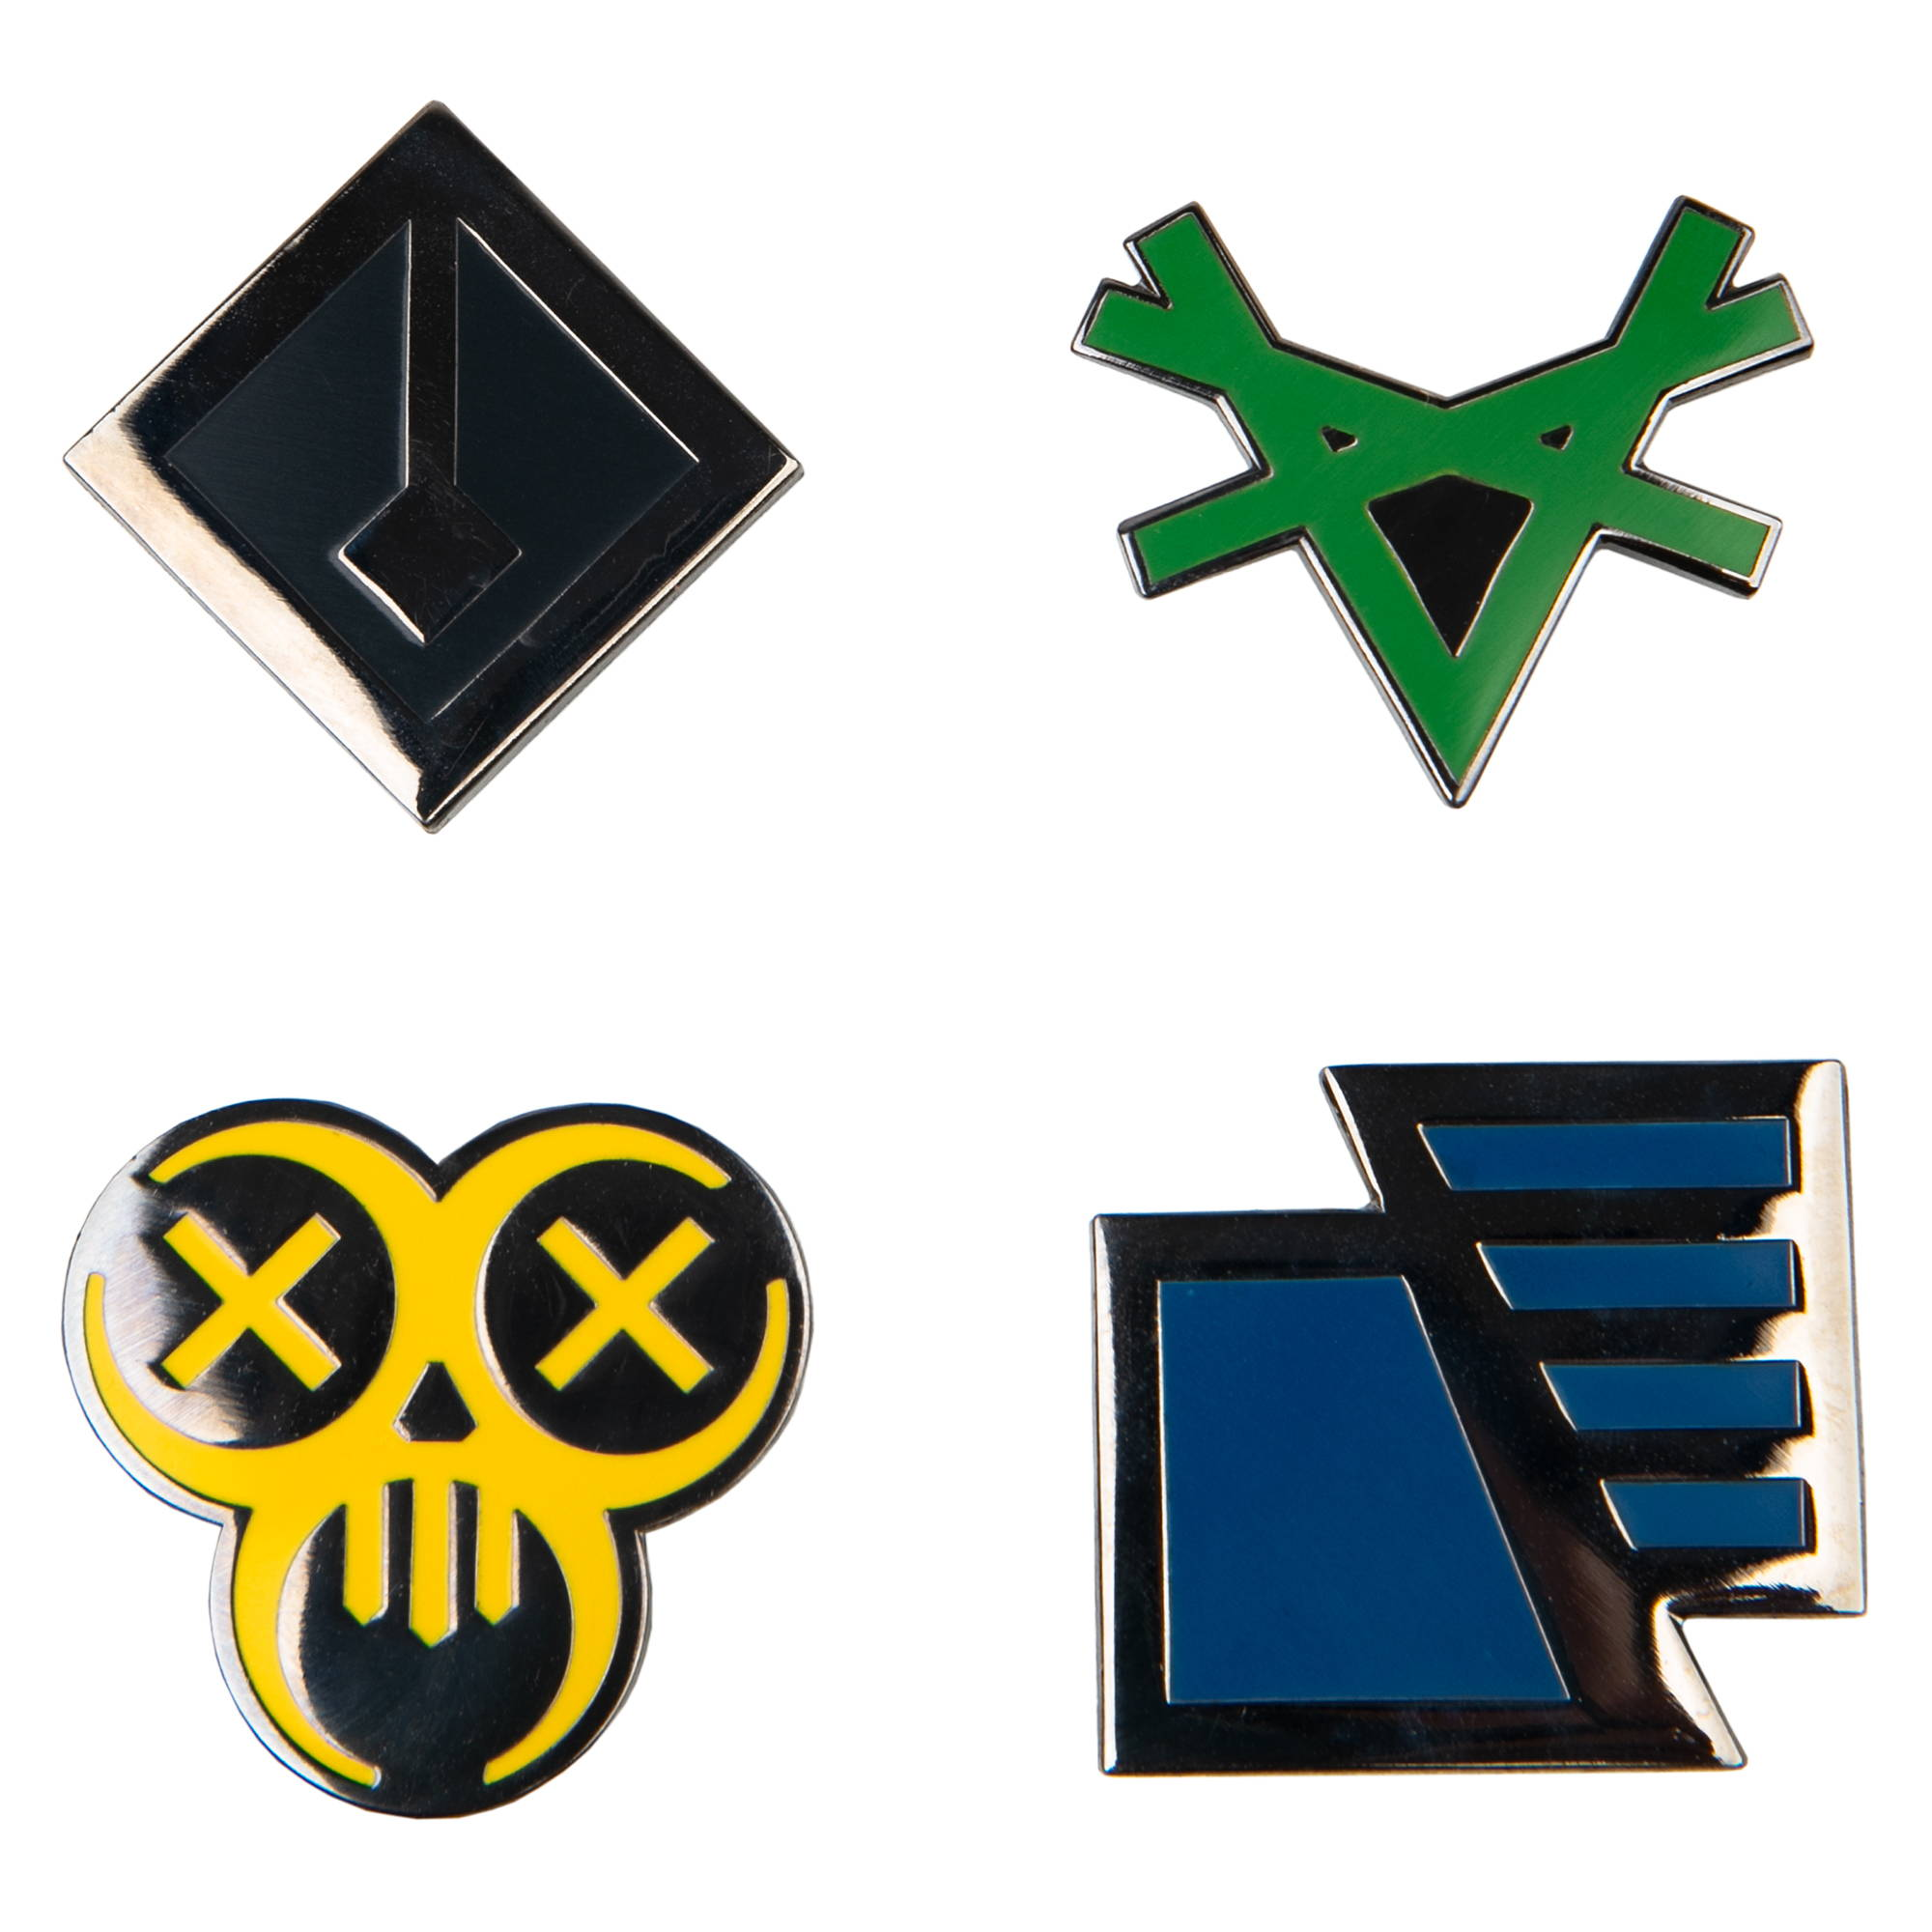 Product images of the The Division 2 Factions Enamel Pin Set